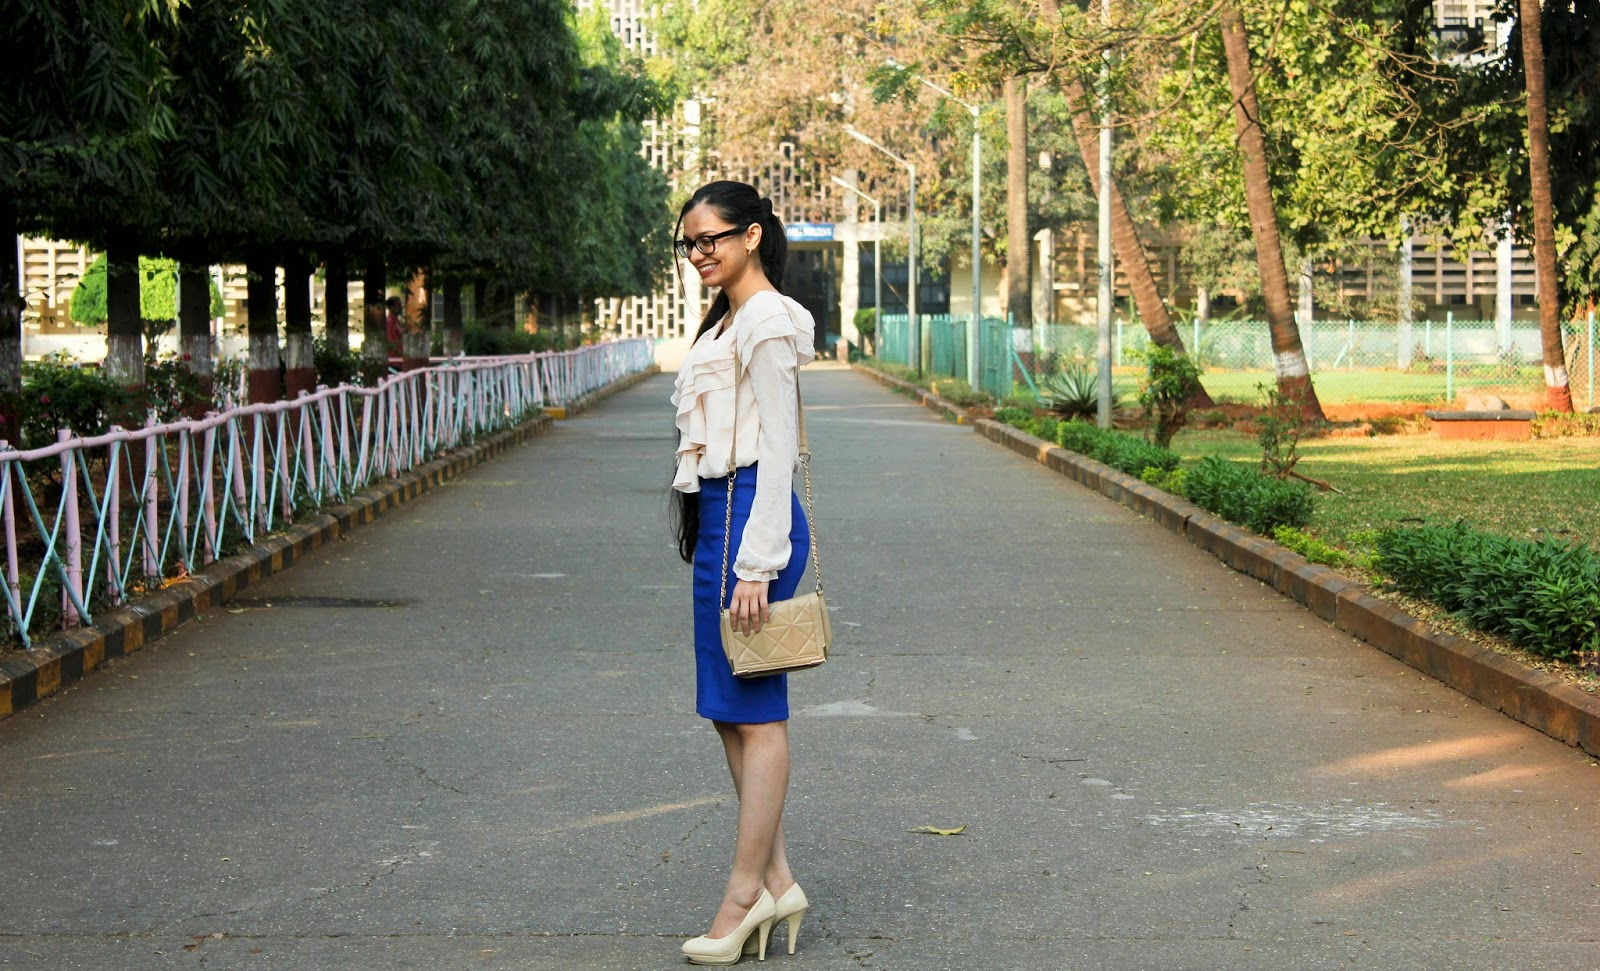 mumbai fashion blogger, how to wear ruffles to work, what to wear to office, mumbai streetstyle, fashion blogger, how to wear frills, what to wear to work, workwear, how to wear a skirt, mumbai